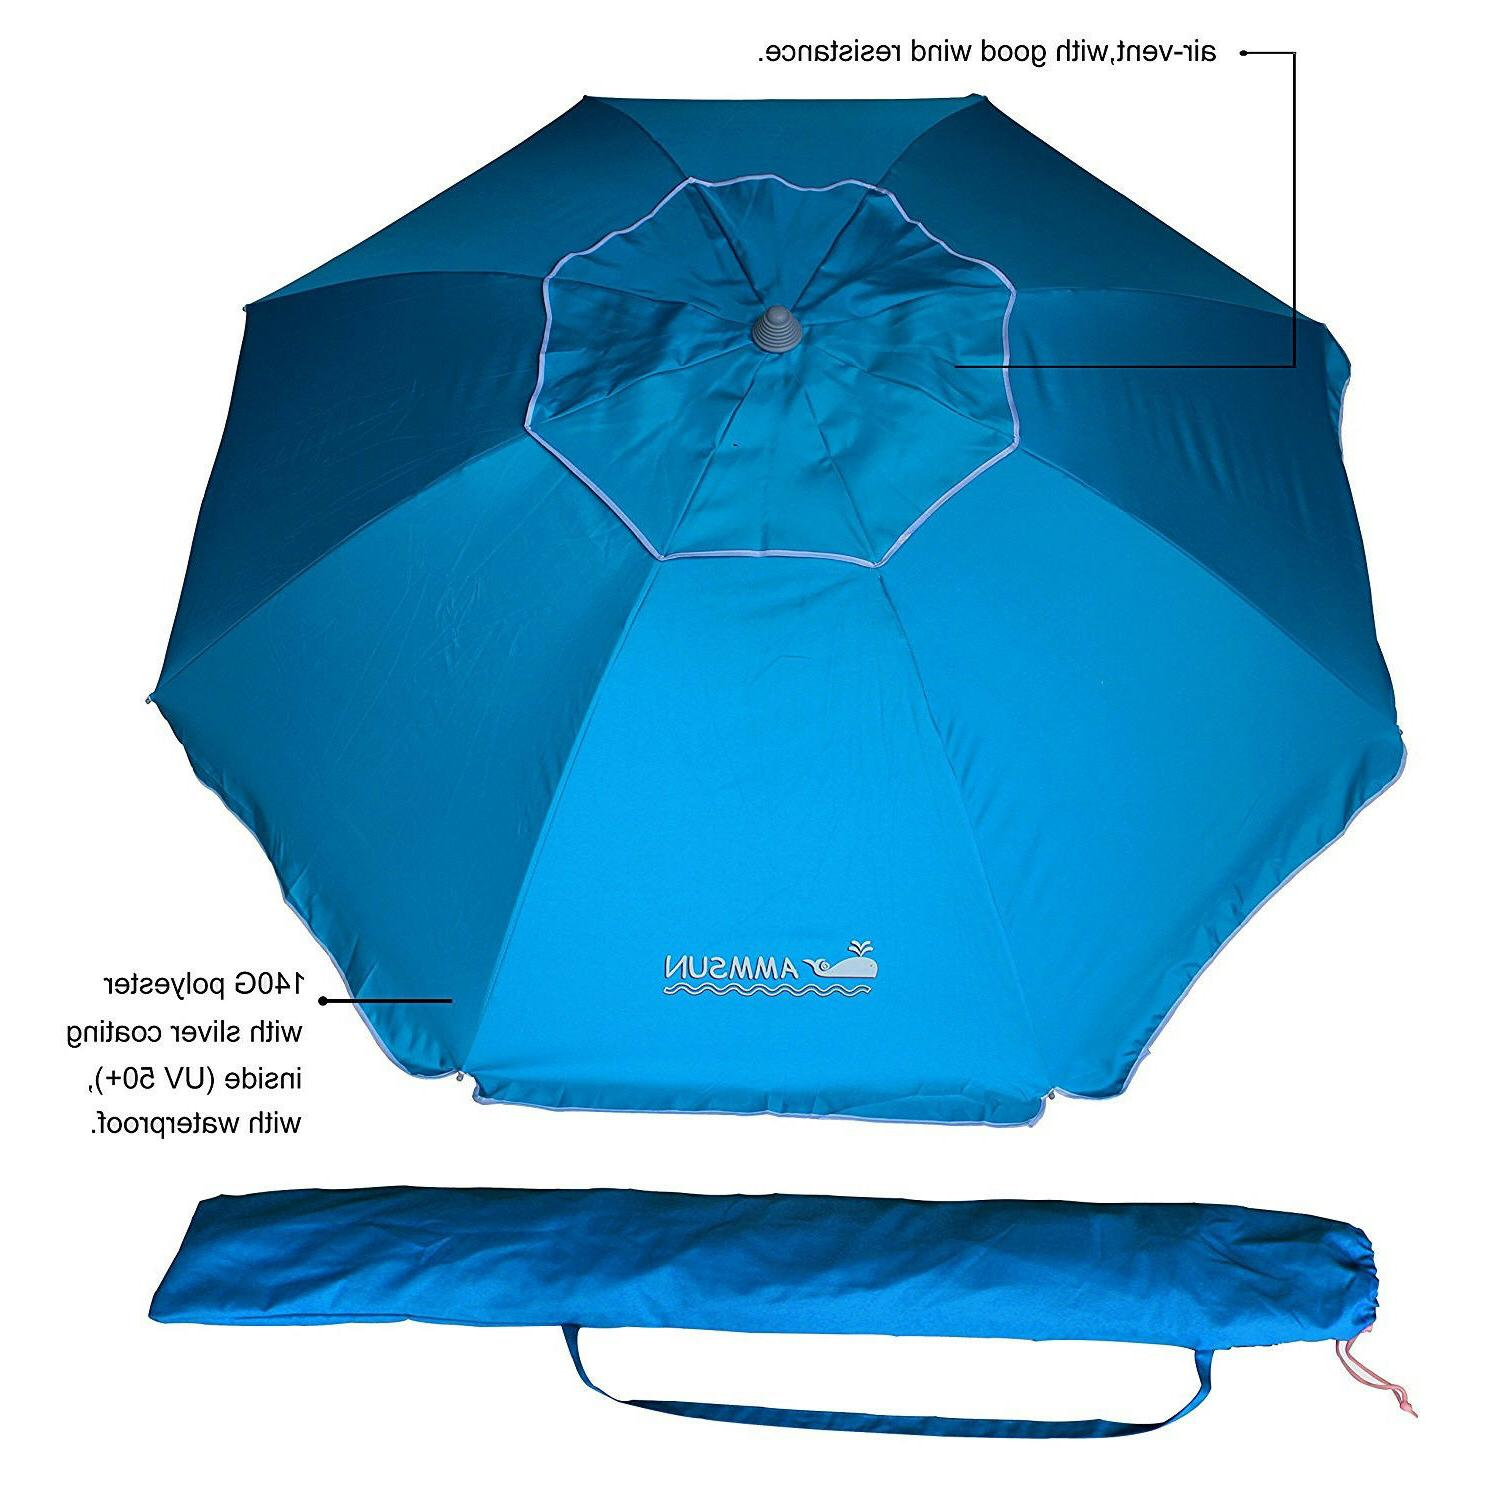 AMMSUN 8 Sand Beach Umbrella w/ Coating